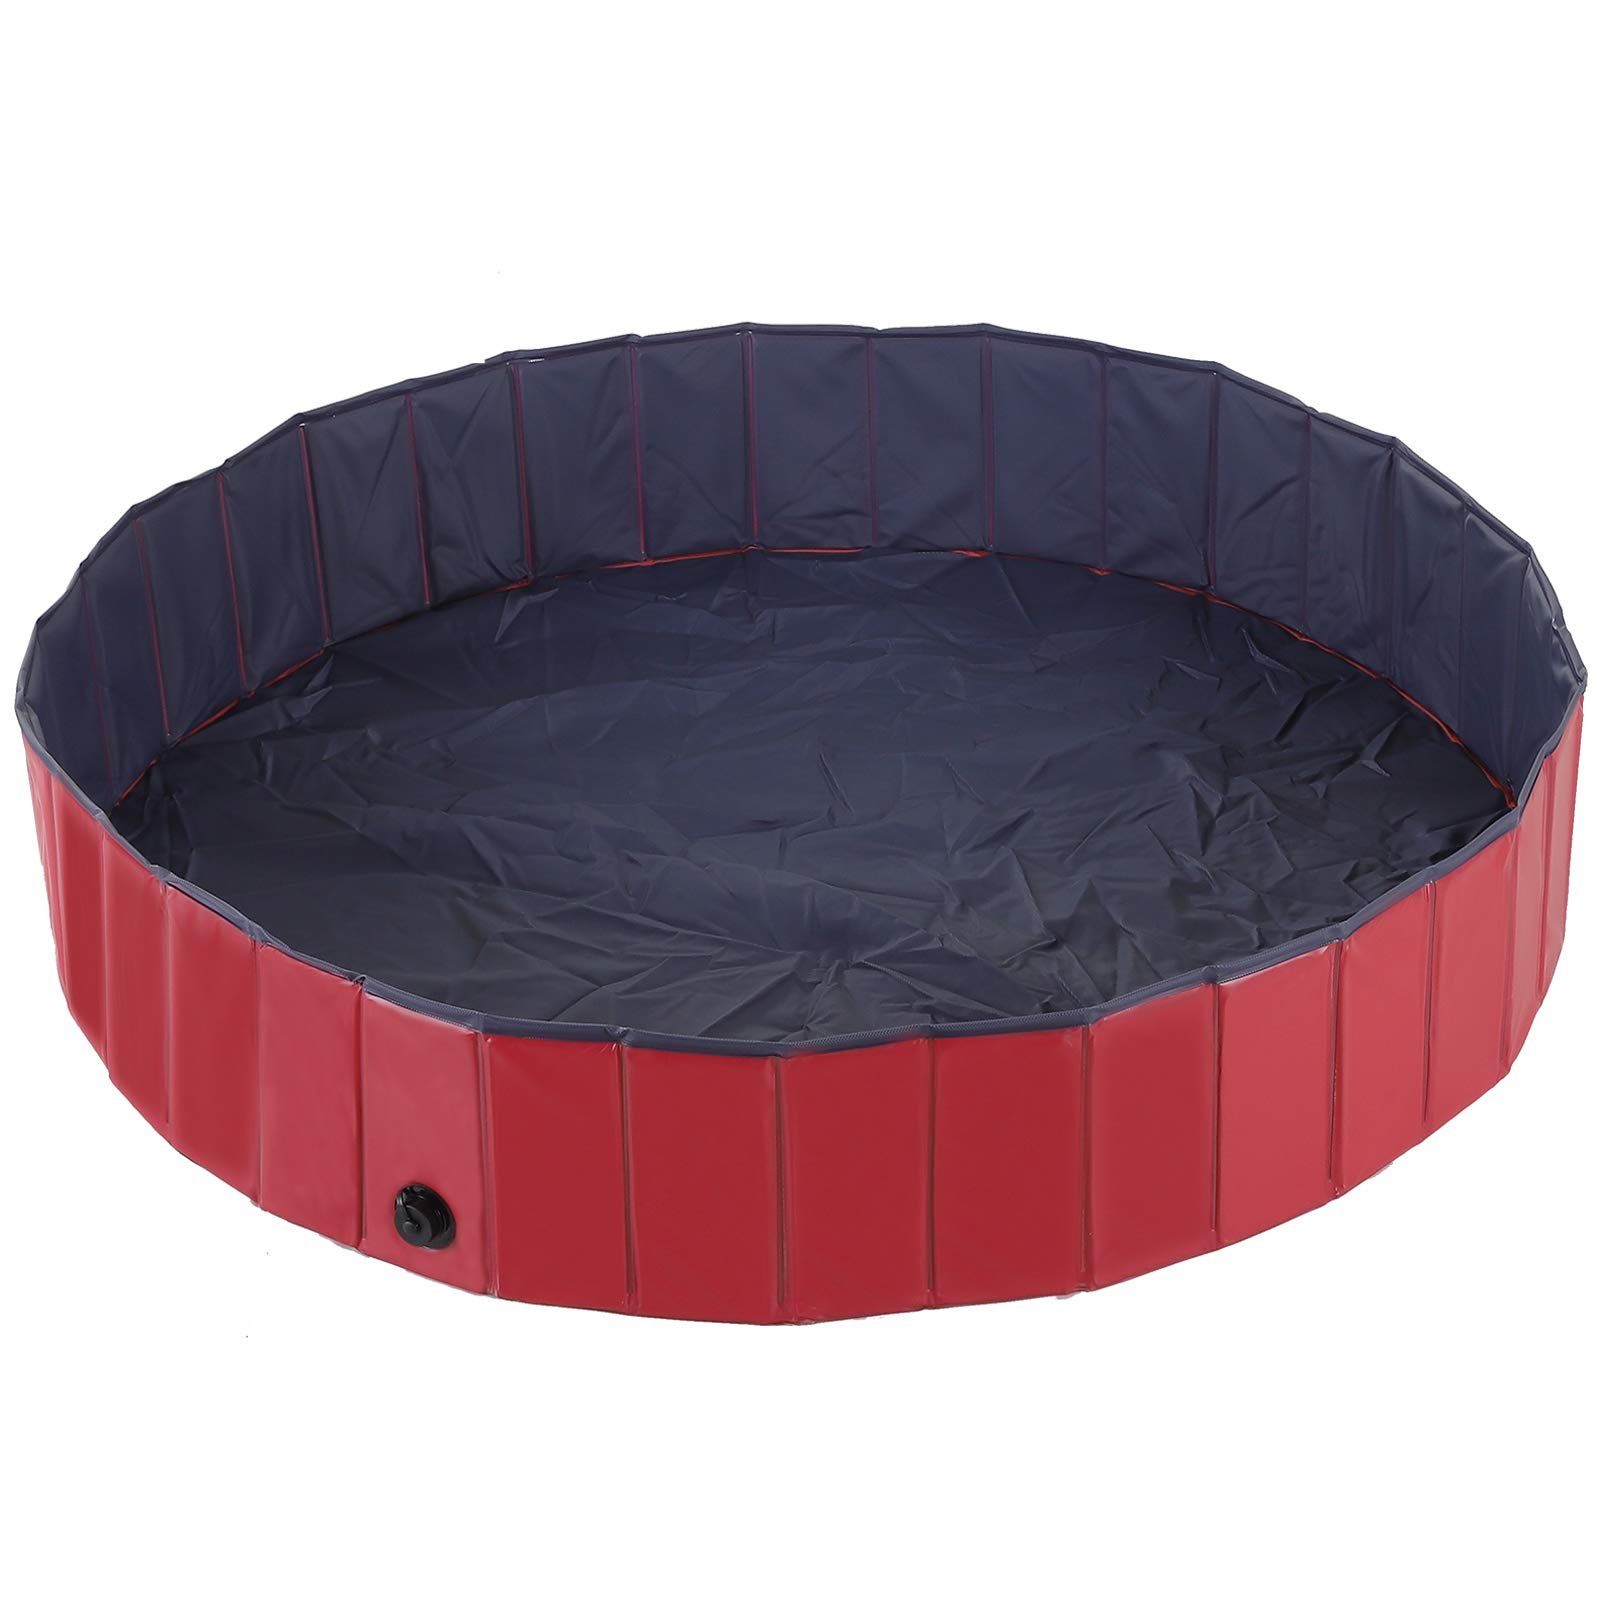 PawHut Pet Swimming Pool Dog Bathing Tub 12'' x 63'' All-Purpose Collapsible PVC Red / Dark Blue by PawHut